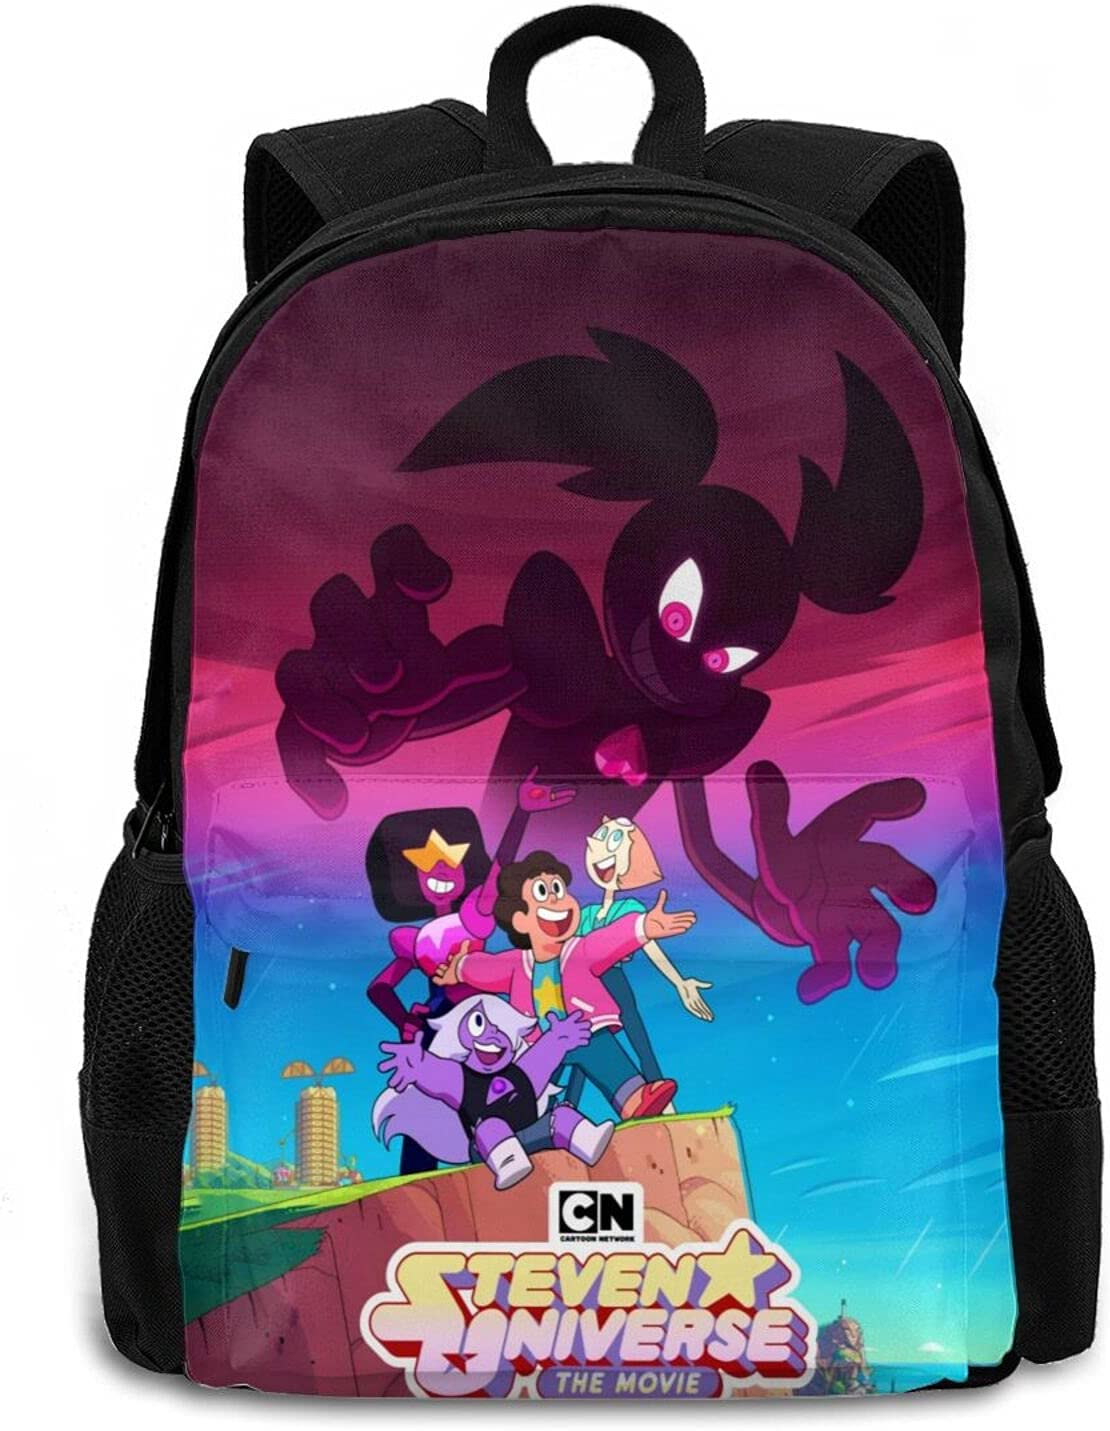 S-teven Un-iverse Anime Free shipping / New Backpack Fashion Durable Max 54% OFF Student School